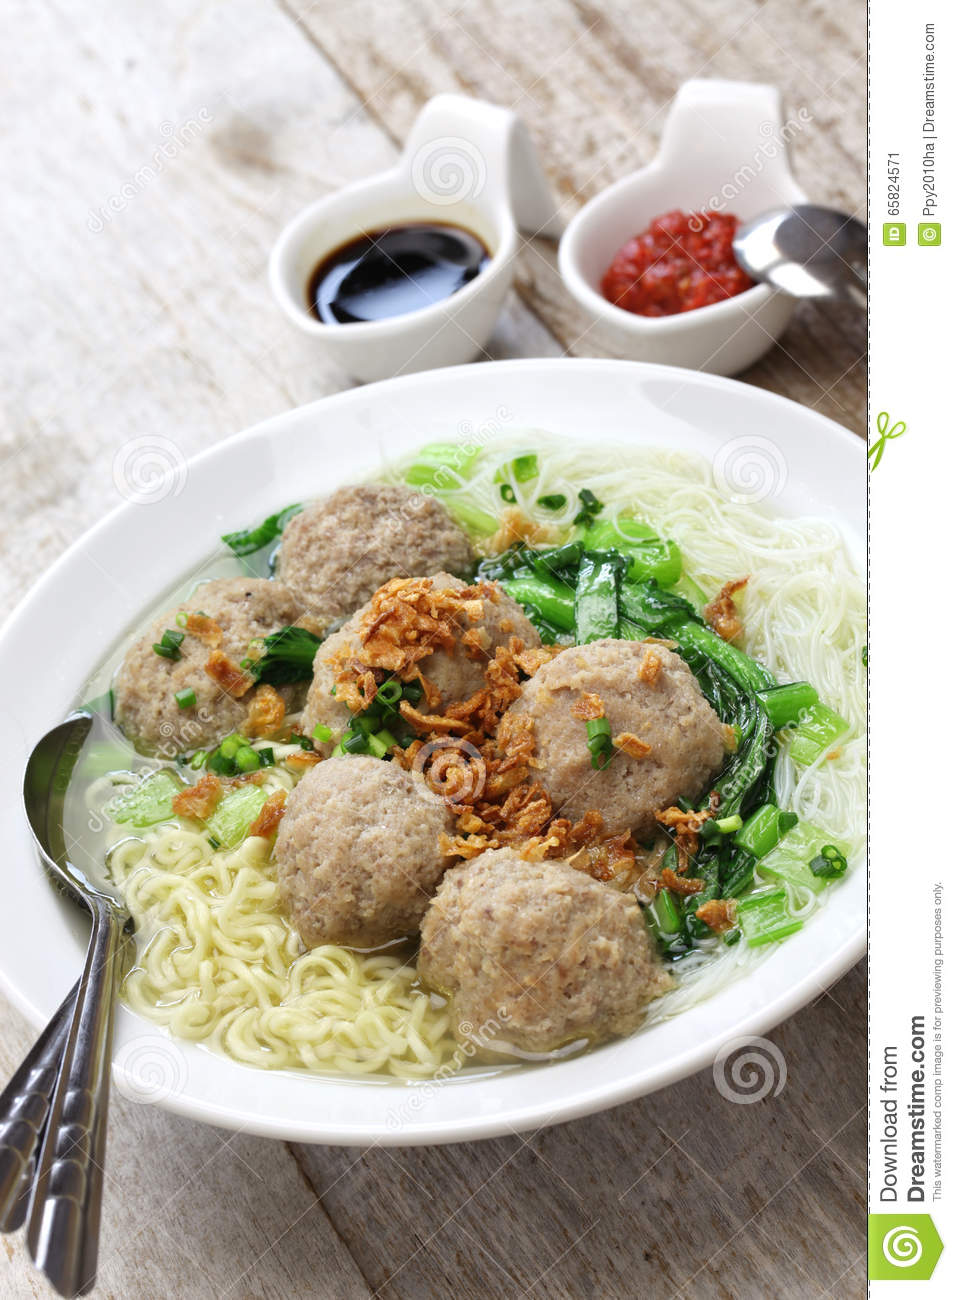 Bakso, Indonesian Meatball Soup With Noodles Stock Image ...